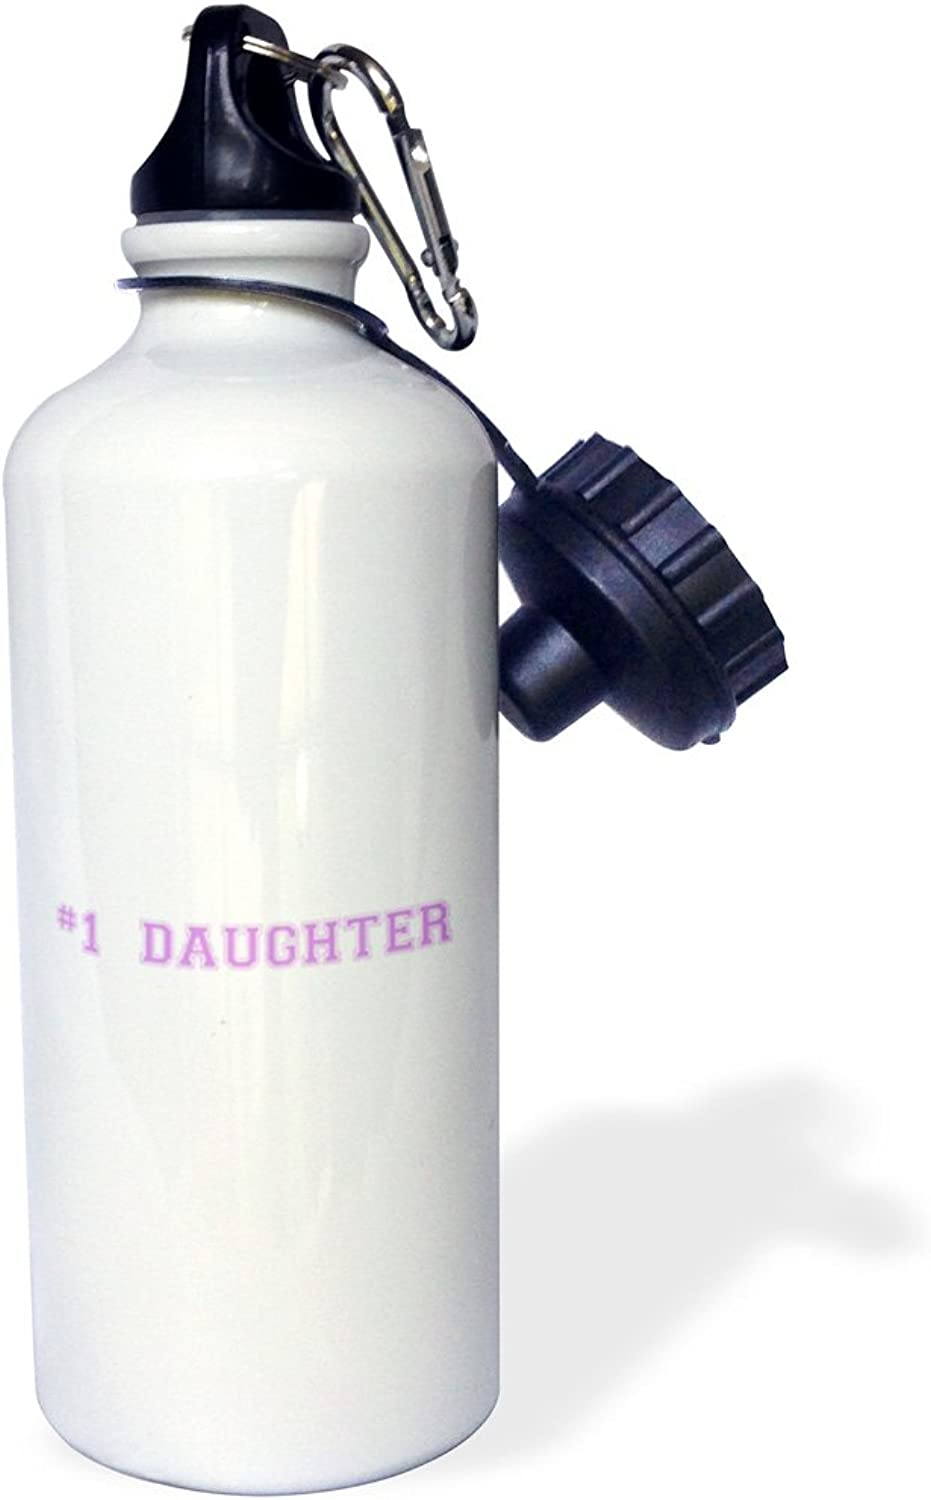 3dpink wb_151605_1   1 DaughterNumber One Daughter for worlds greatest and Beste daughterspink purple text  Sports Water Bottle, 21 oz, White